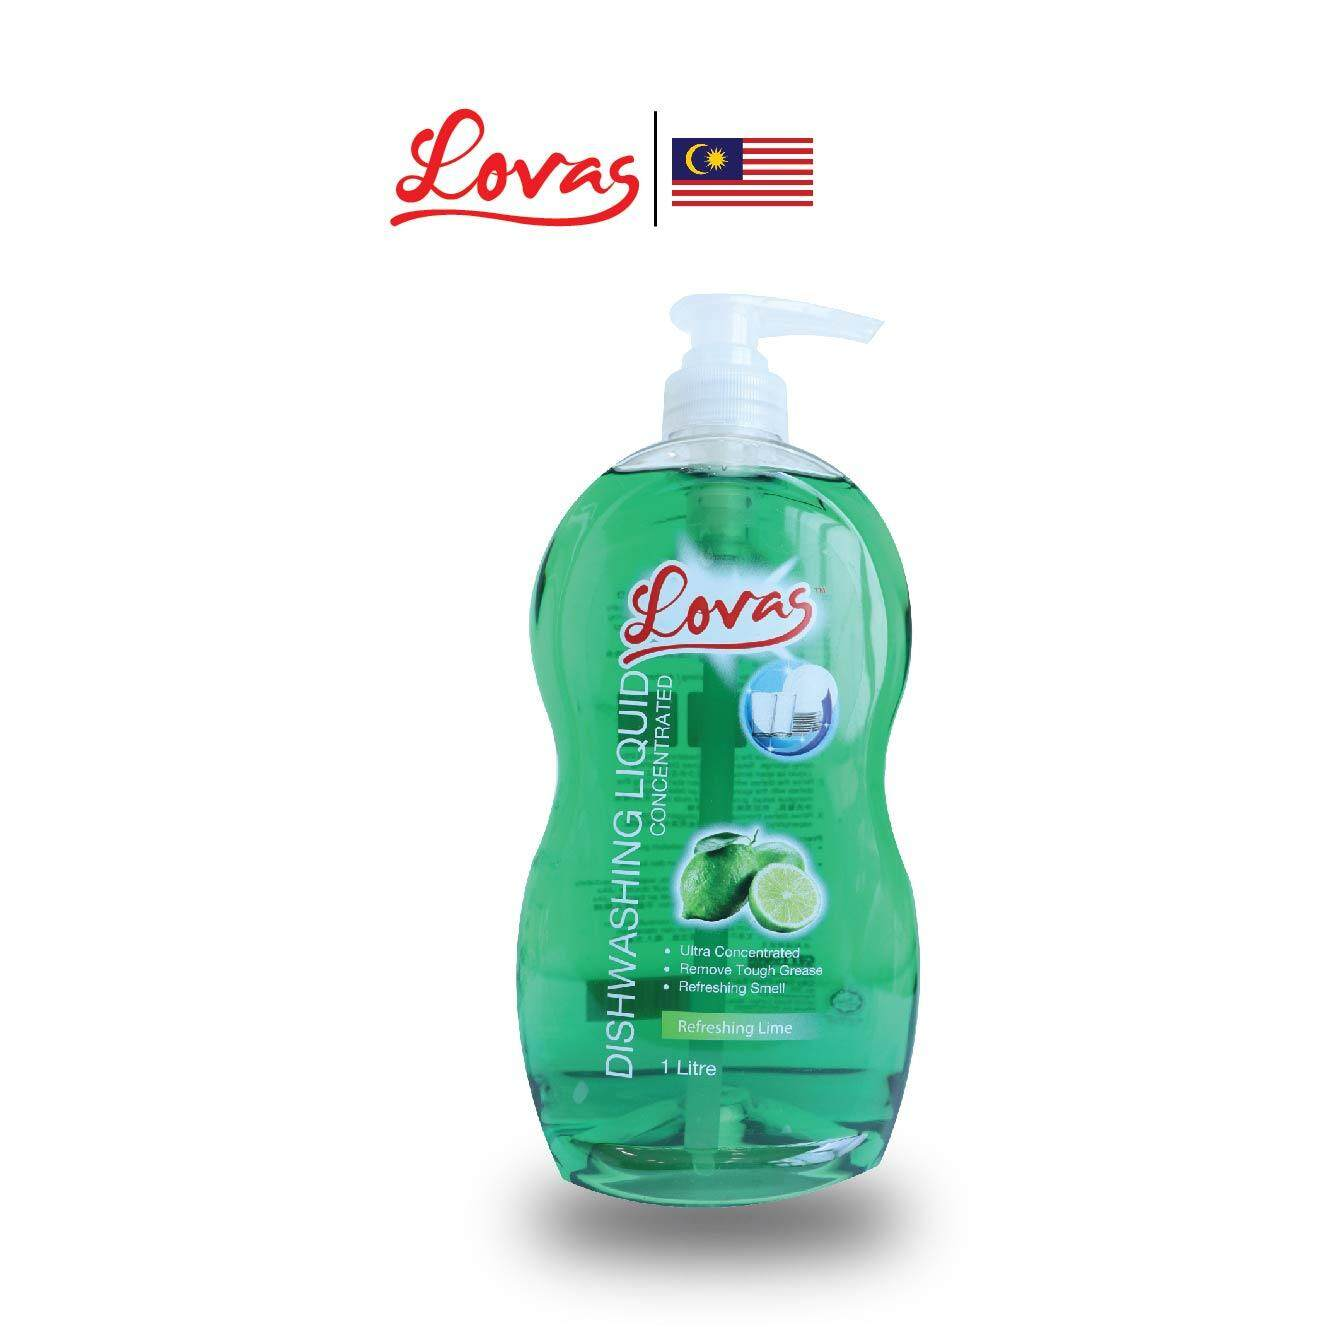 LOVAS Dishwashing Liquid Concentrated - 1L [Lime] Oil & Grease Remover